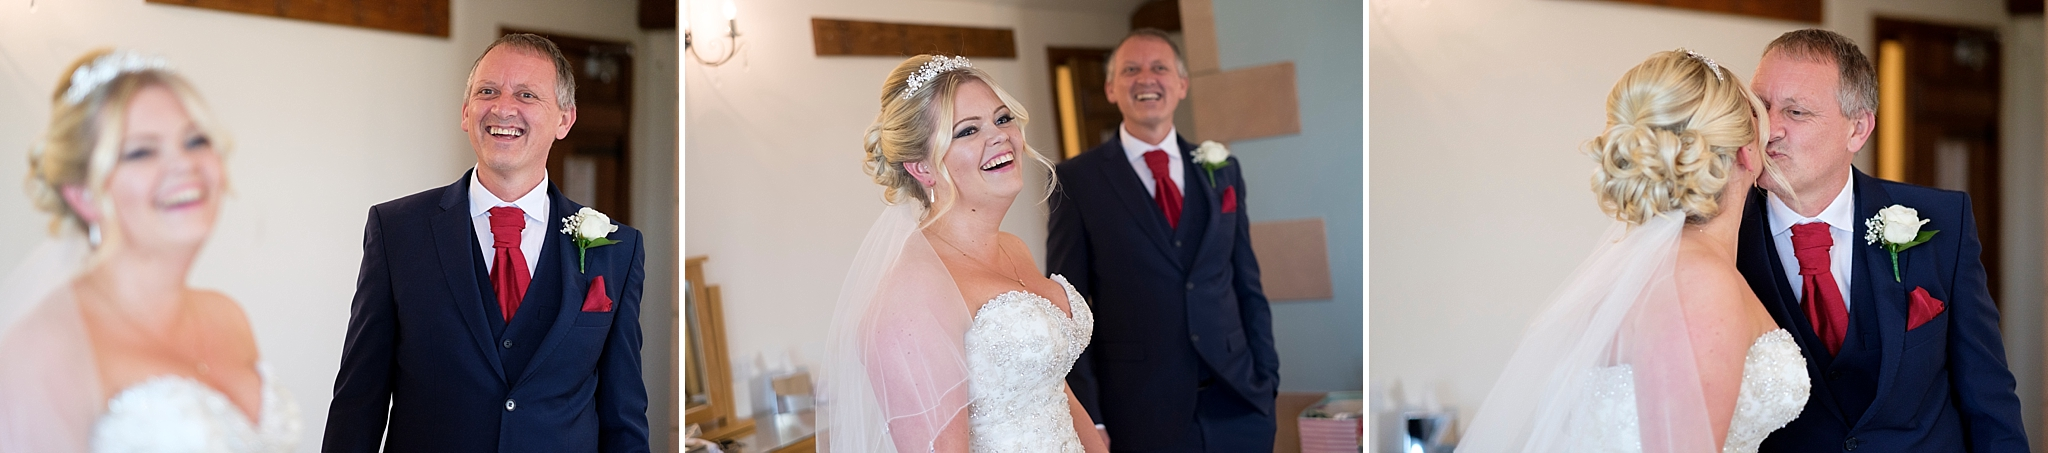 heaton house farm wedding photographer stoke 7.jpg